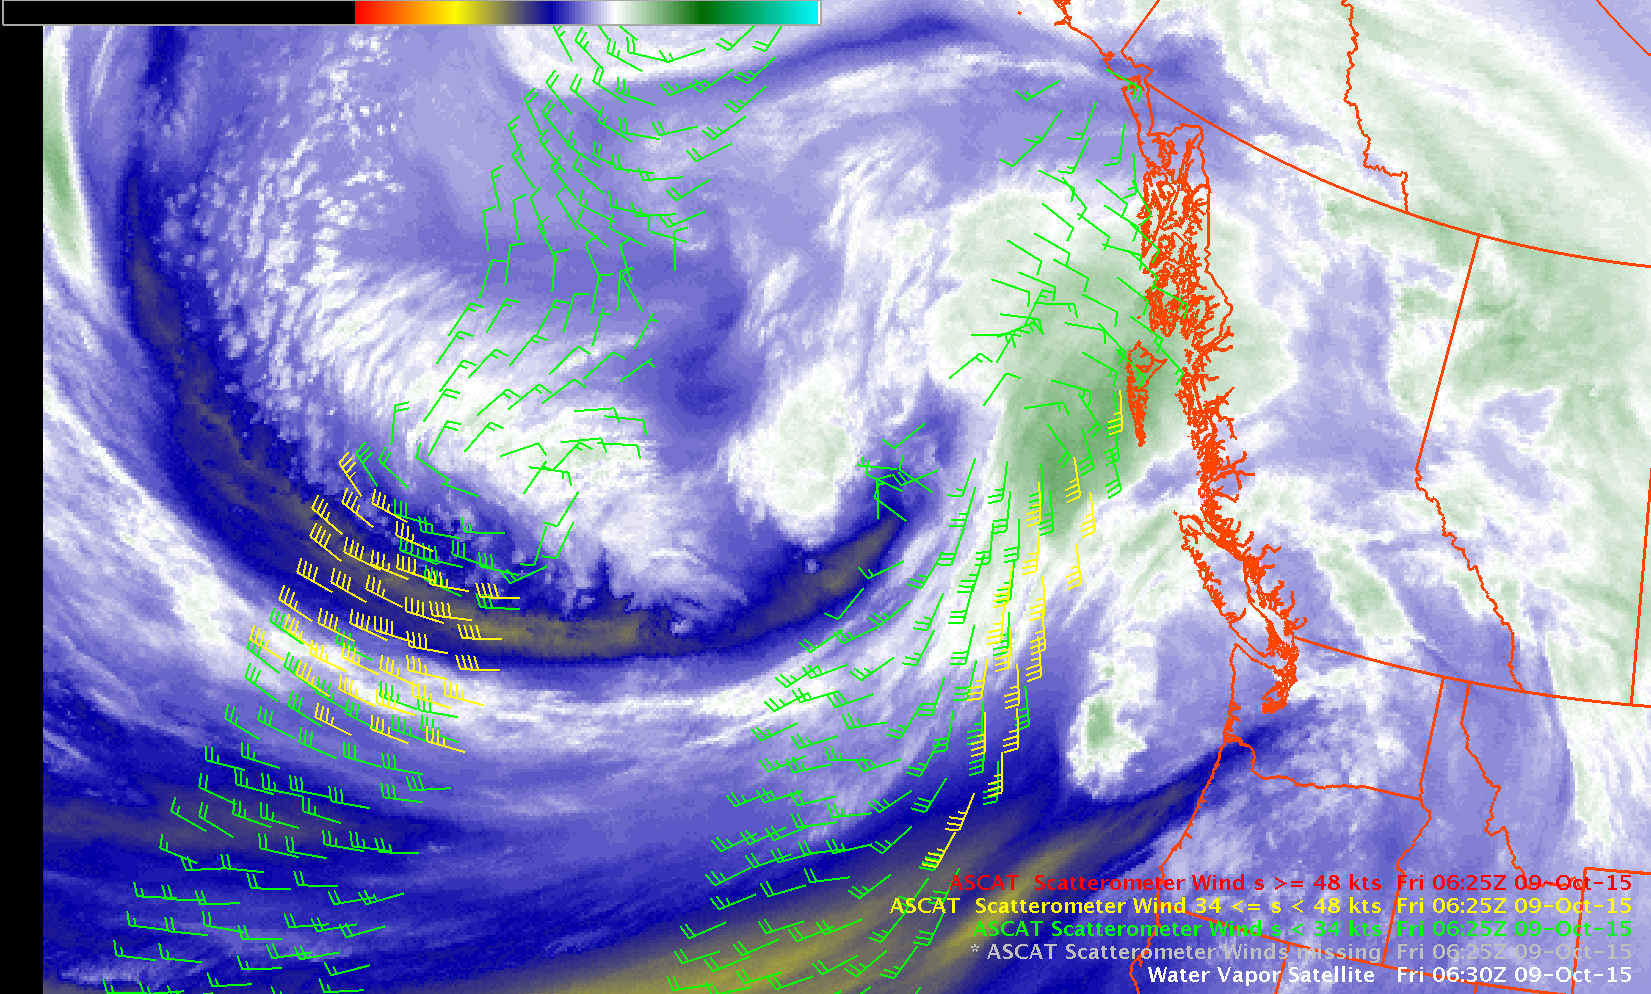 GOES-15 Water Vapor Imagery and ASCAT Scatterometer Winds, 0630 UTC on 9 October 2015 [click to enlarge]